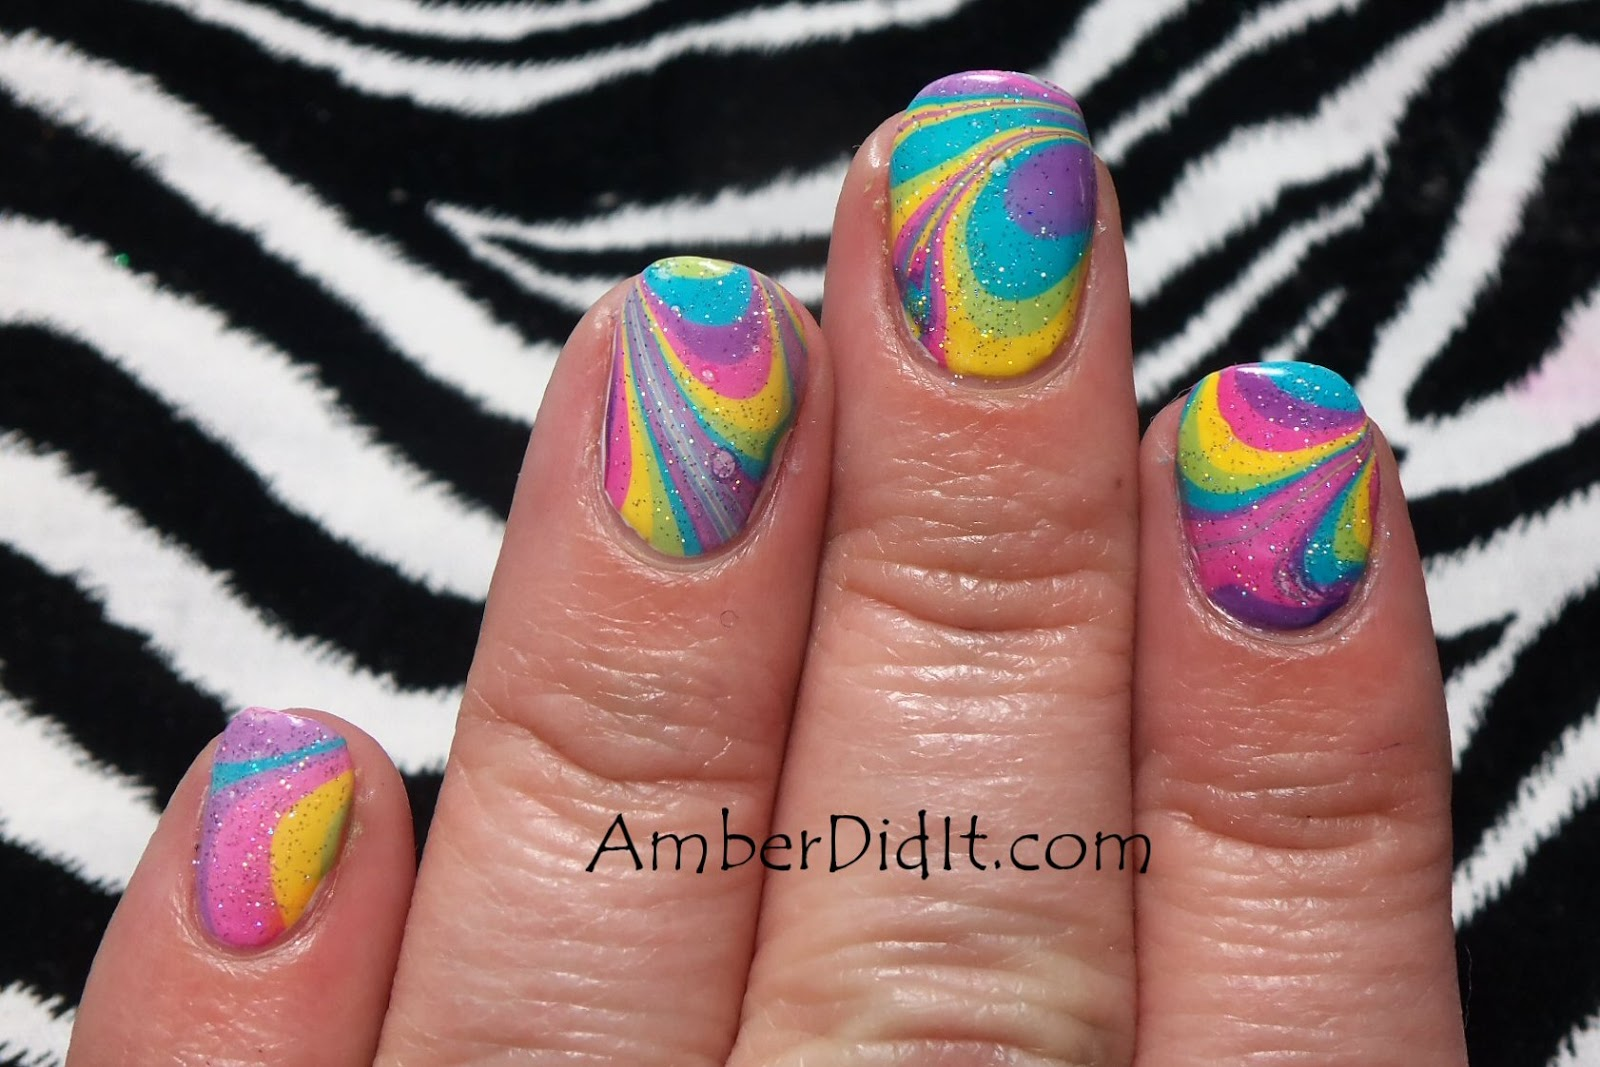 Amber did it rainbow water marble rainbow water marble prinsesfo Image collections